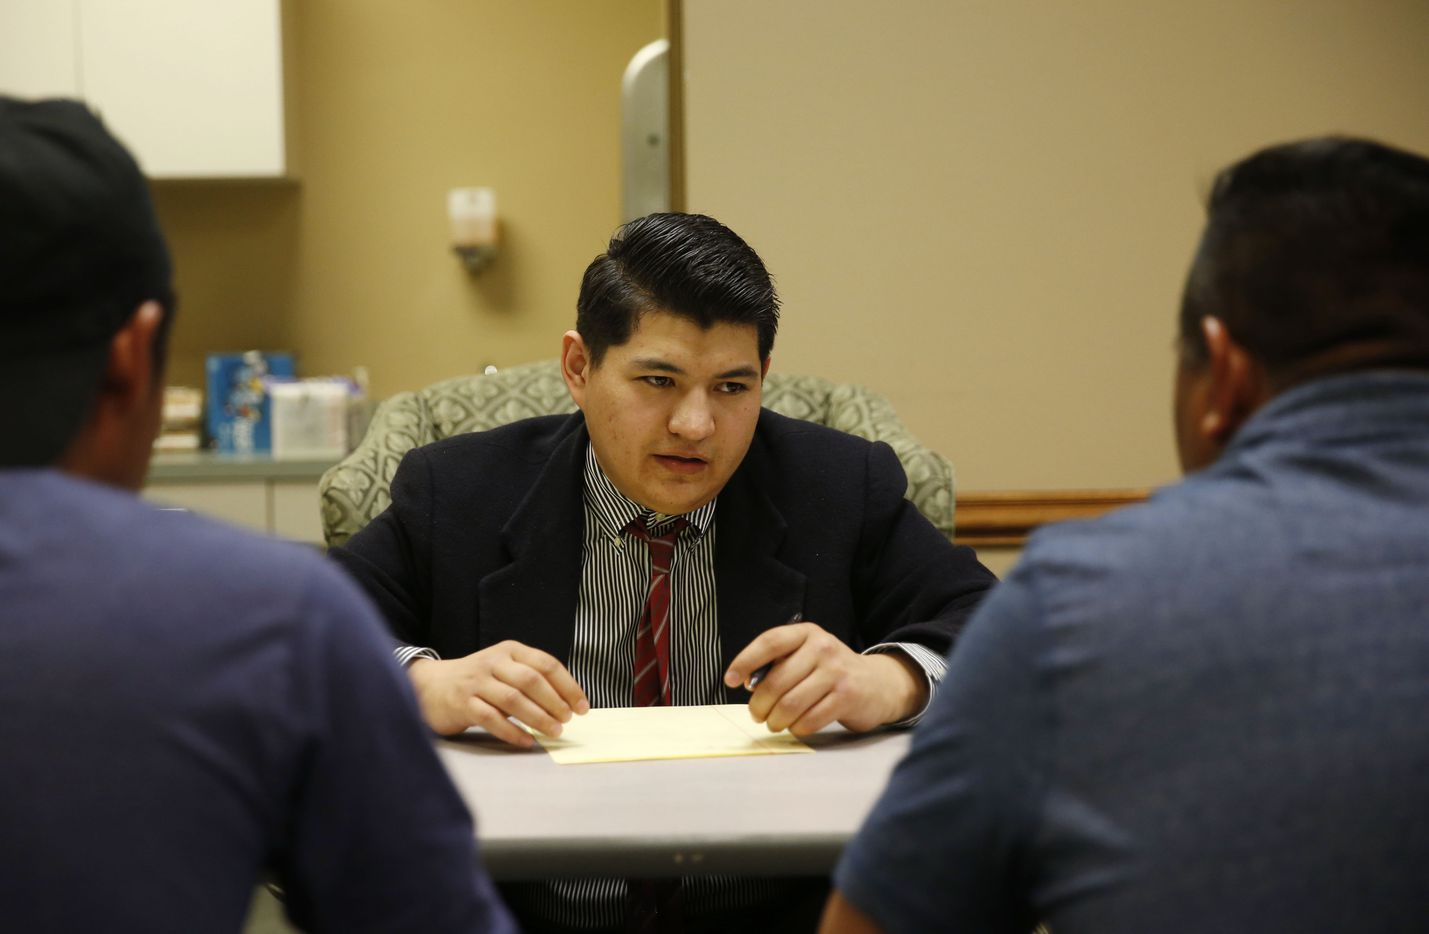 Attorney, Pablo Acosta of Richardson gives legal advice to a family at First United Methodist Church Allen on Wednesday, April 3, 2019 in Allen, Texas. A group of attorneys volunteered their time to give free legal advice to people affected by the ICE raid at CVE in the morning. (Vernon Bryant/The Dallas Morning News)